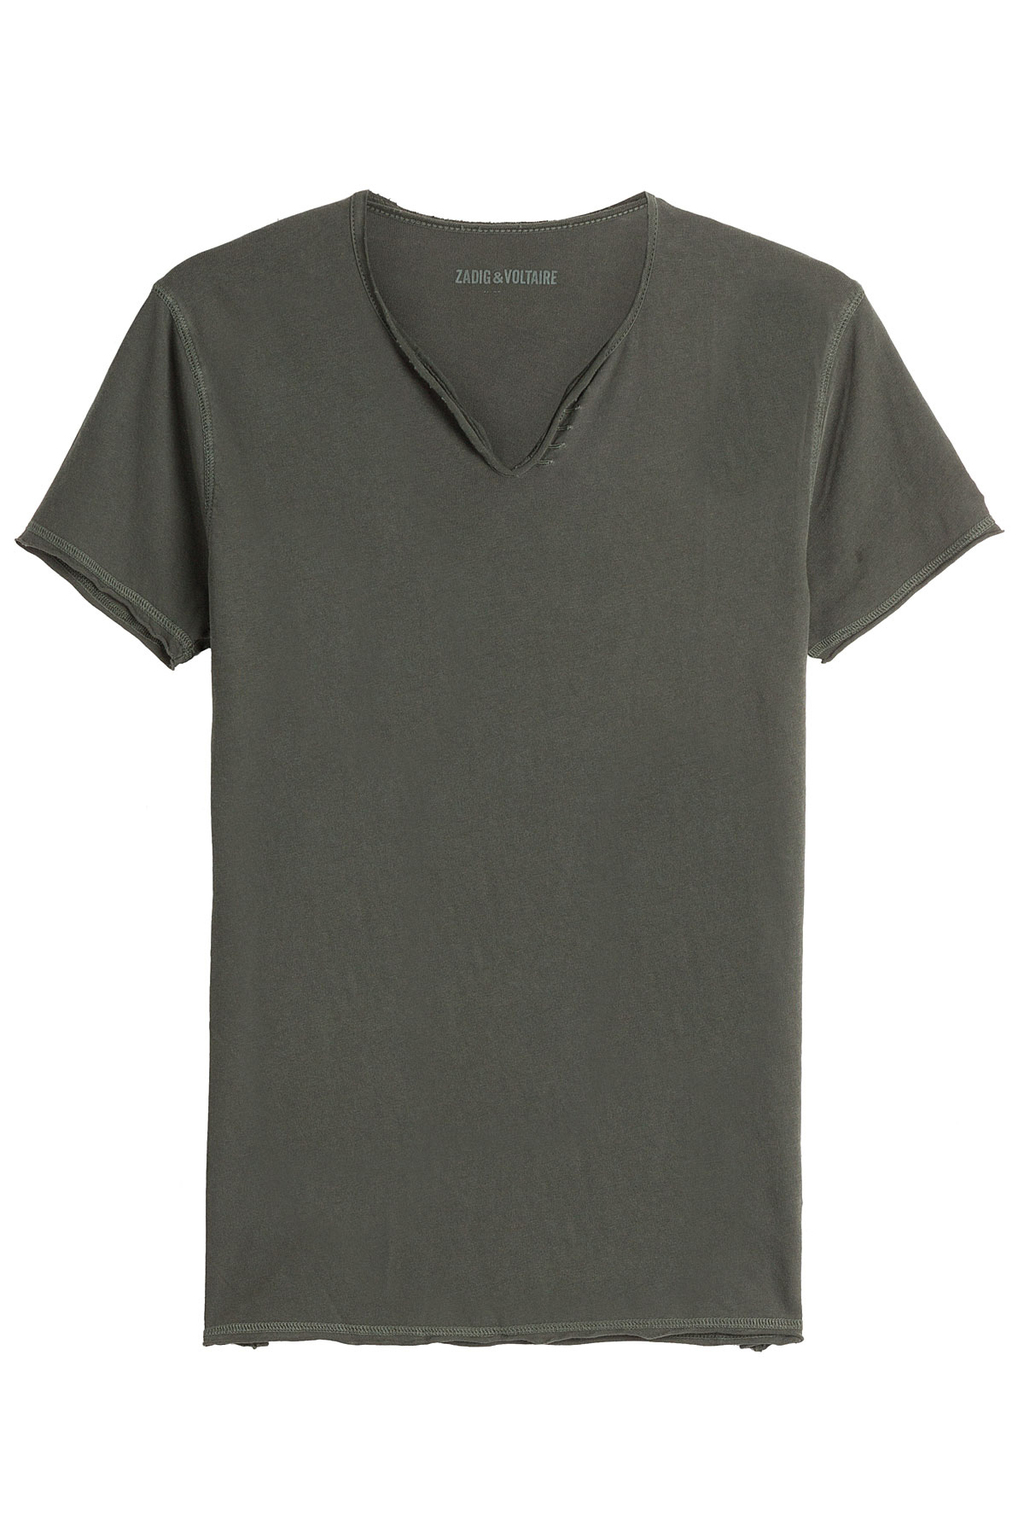 Monas Mc Overdyed Cotton T Shirt Green - neckline: v-neck; pattern: plain; style: t-shirt; predominant colour: dark green; occasions: casual; length: standard; fibres: cotton - 100%; fit: body skimming; sleeve length: short sleeve; sleeve style: standard; texture group: jersey - clingy; pattern type: fabric; season: a/w 2016